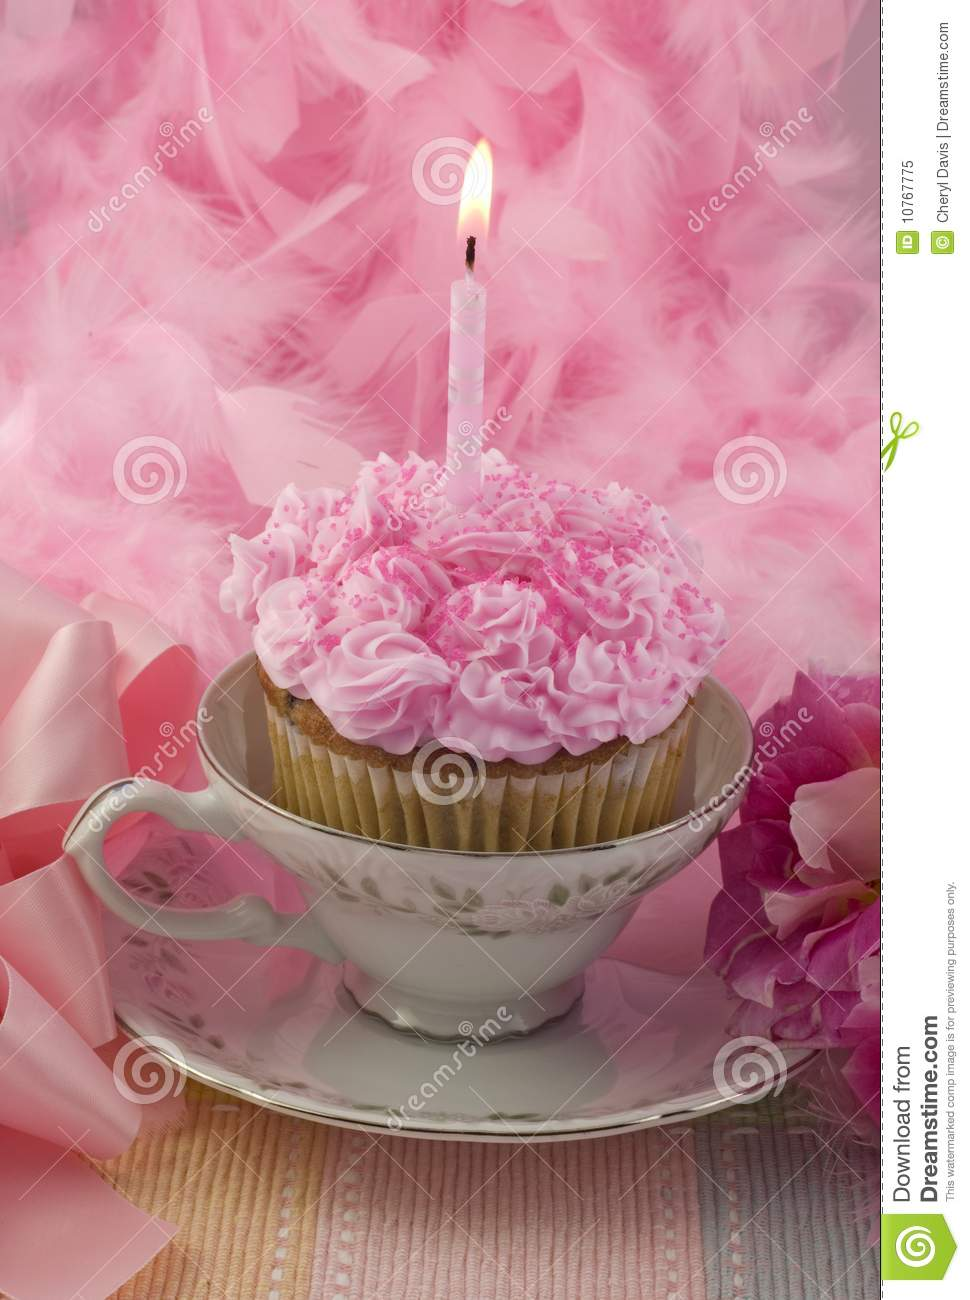 Pink Cupcake With Candle In Teacup Stock Image Image